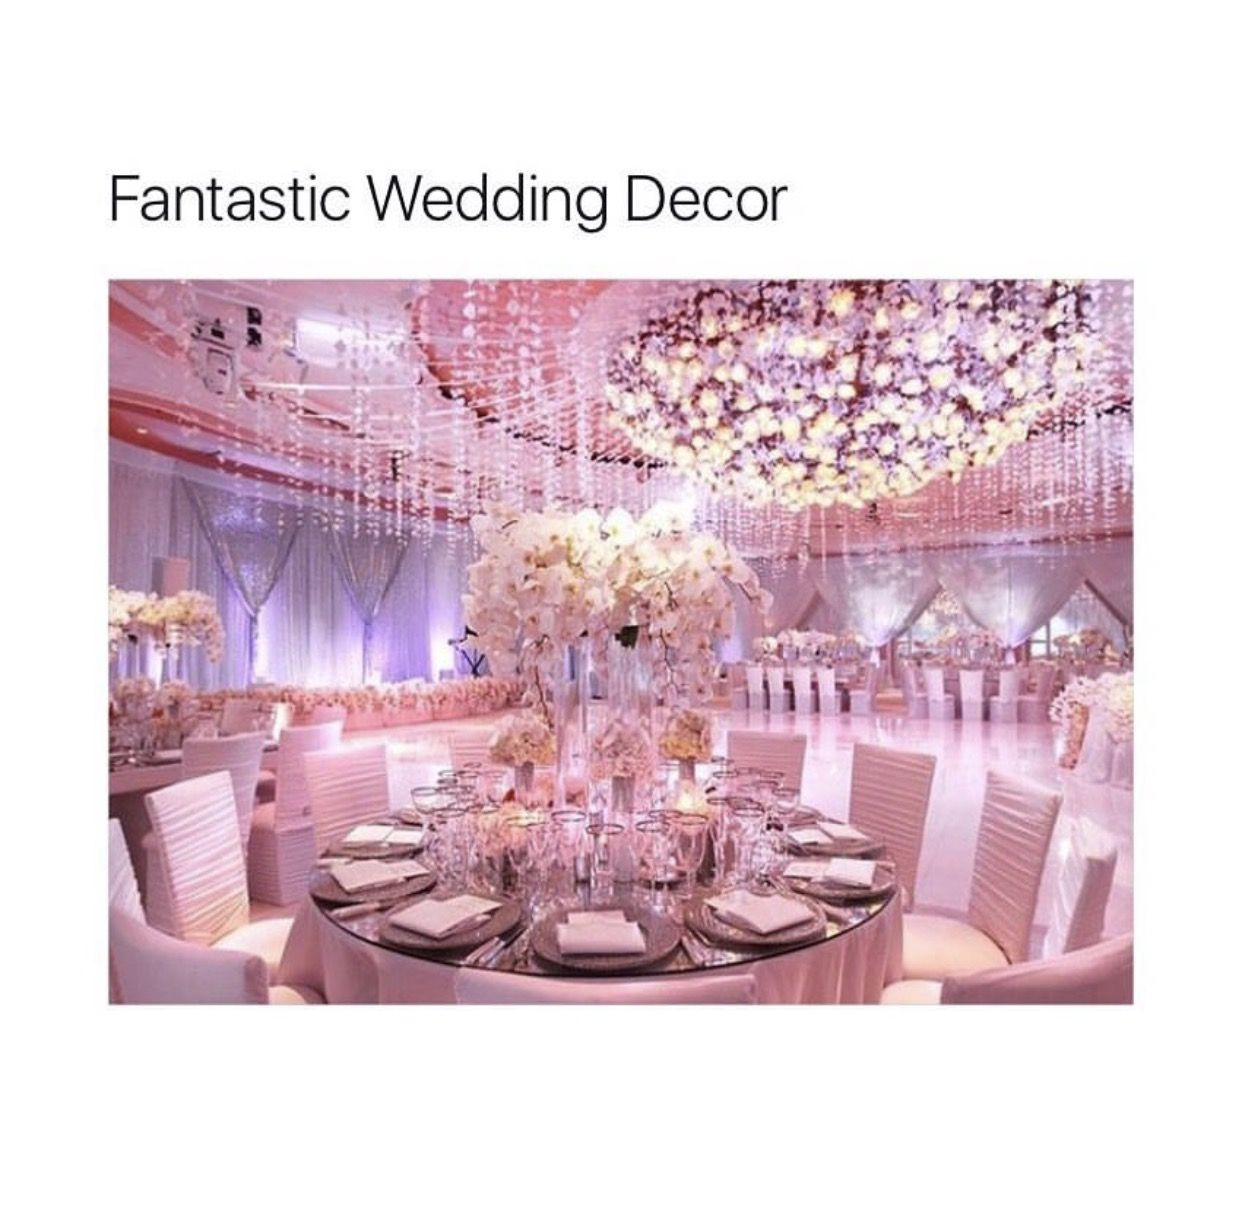 Wedding | Future wedding ideas | Pinterest